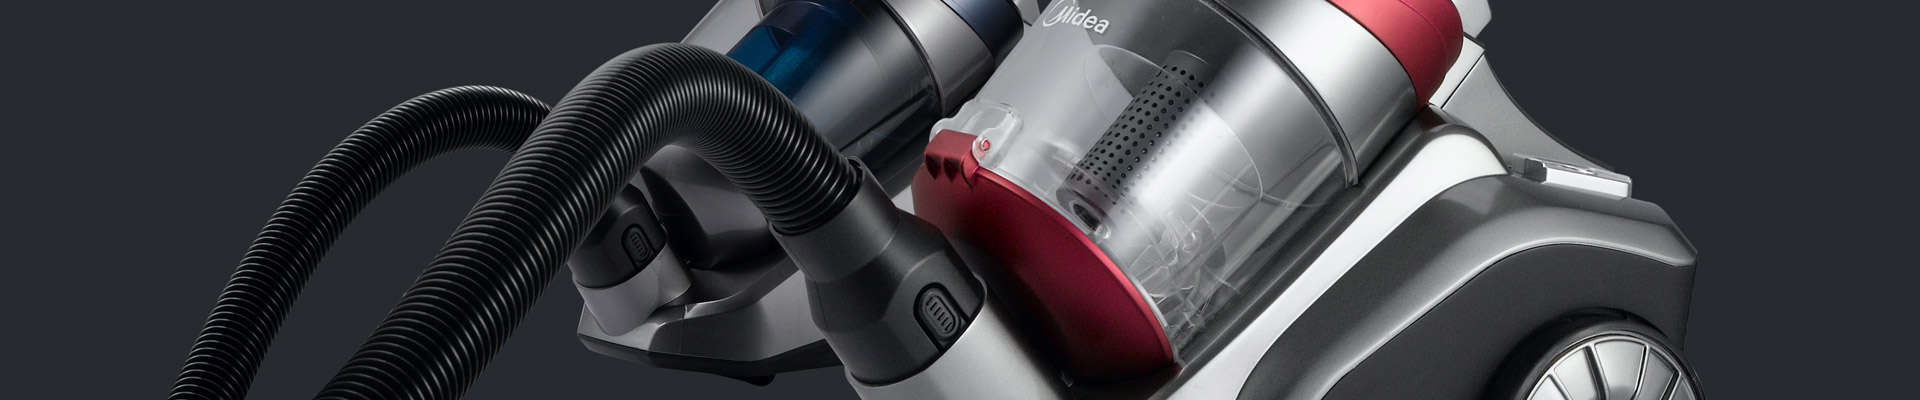 Best Canister Vacuum 2019 – Comprehensive Buyer's Guide and Reviews